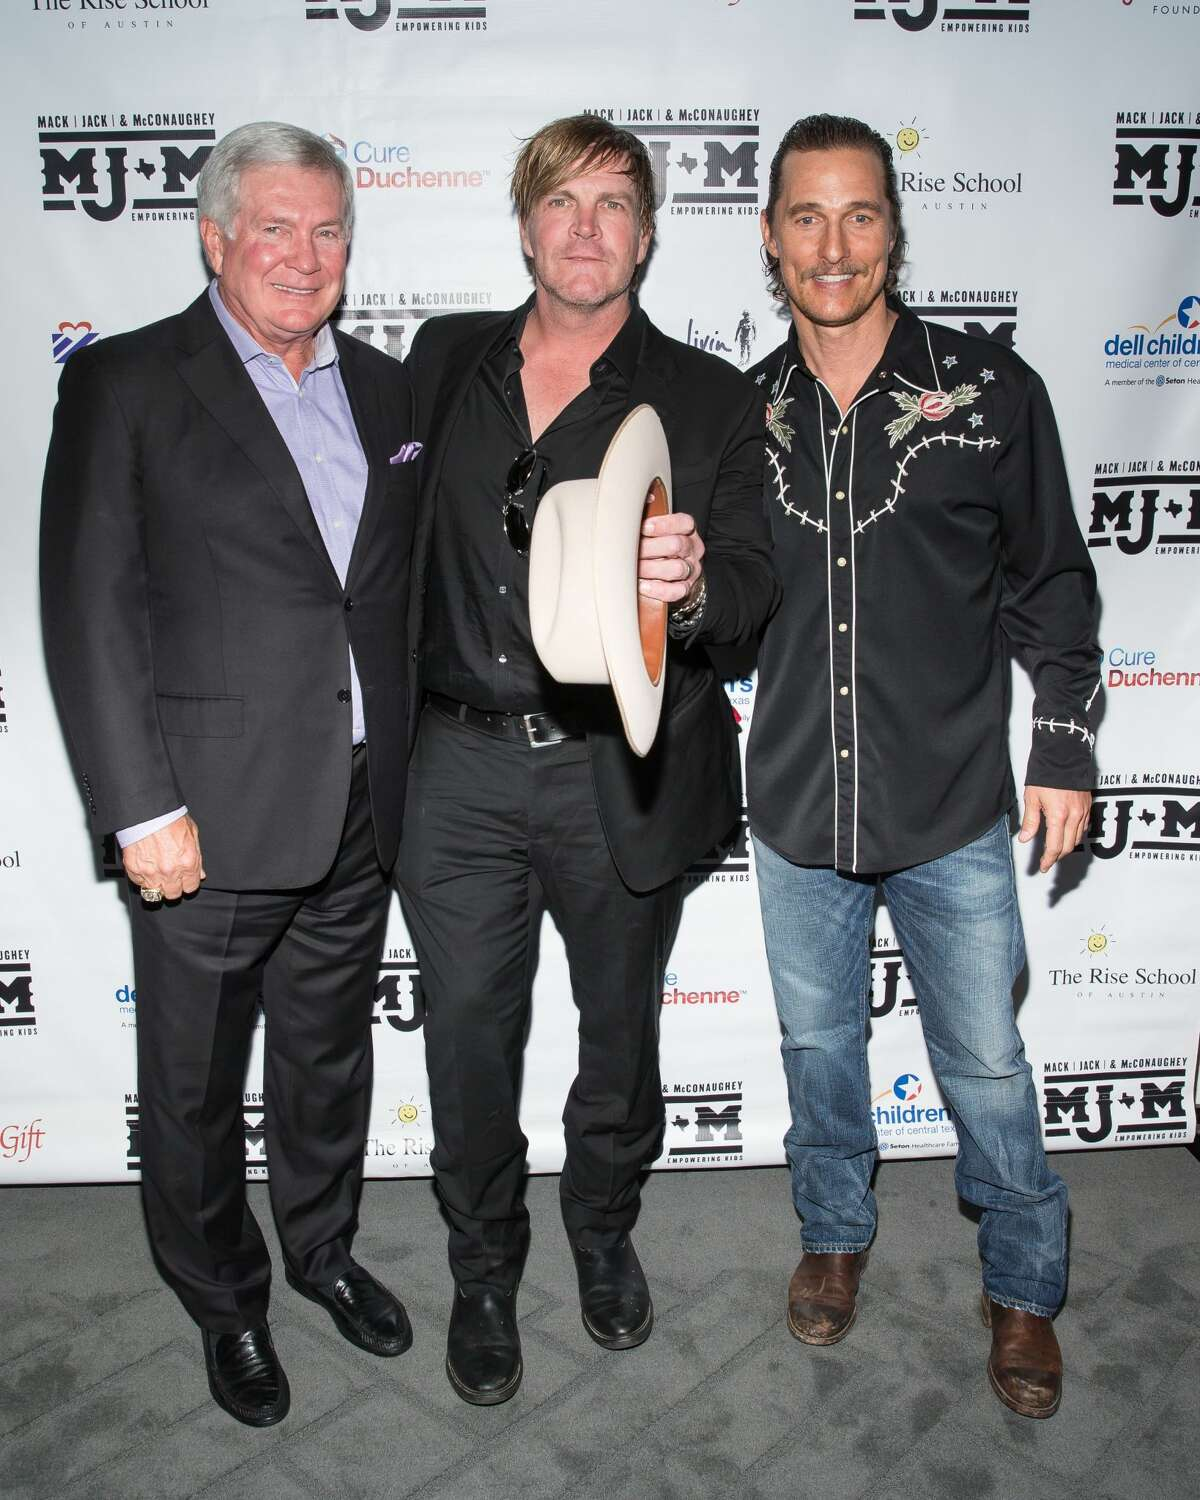 (L-R) ESPN analyst and legendary football coach Mack Brown, ACM award winning recording artist Jack Ingram, and Academy Award-winning actor Matthew McConaughey attend the 5th annual Mack, Jack & McConaughey Gala at ACL Live on April 20, 2017 in Austin, Texas. Keep clicking to see more photos from the music-filled, two-day Mack, Jack & McConaughey benefit.